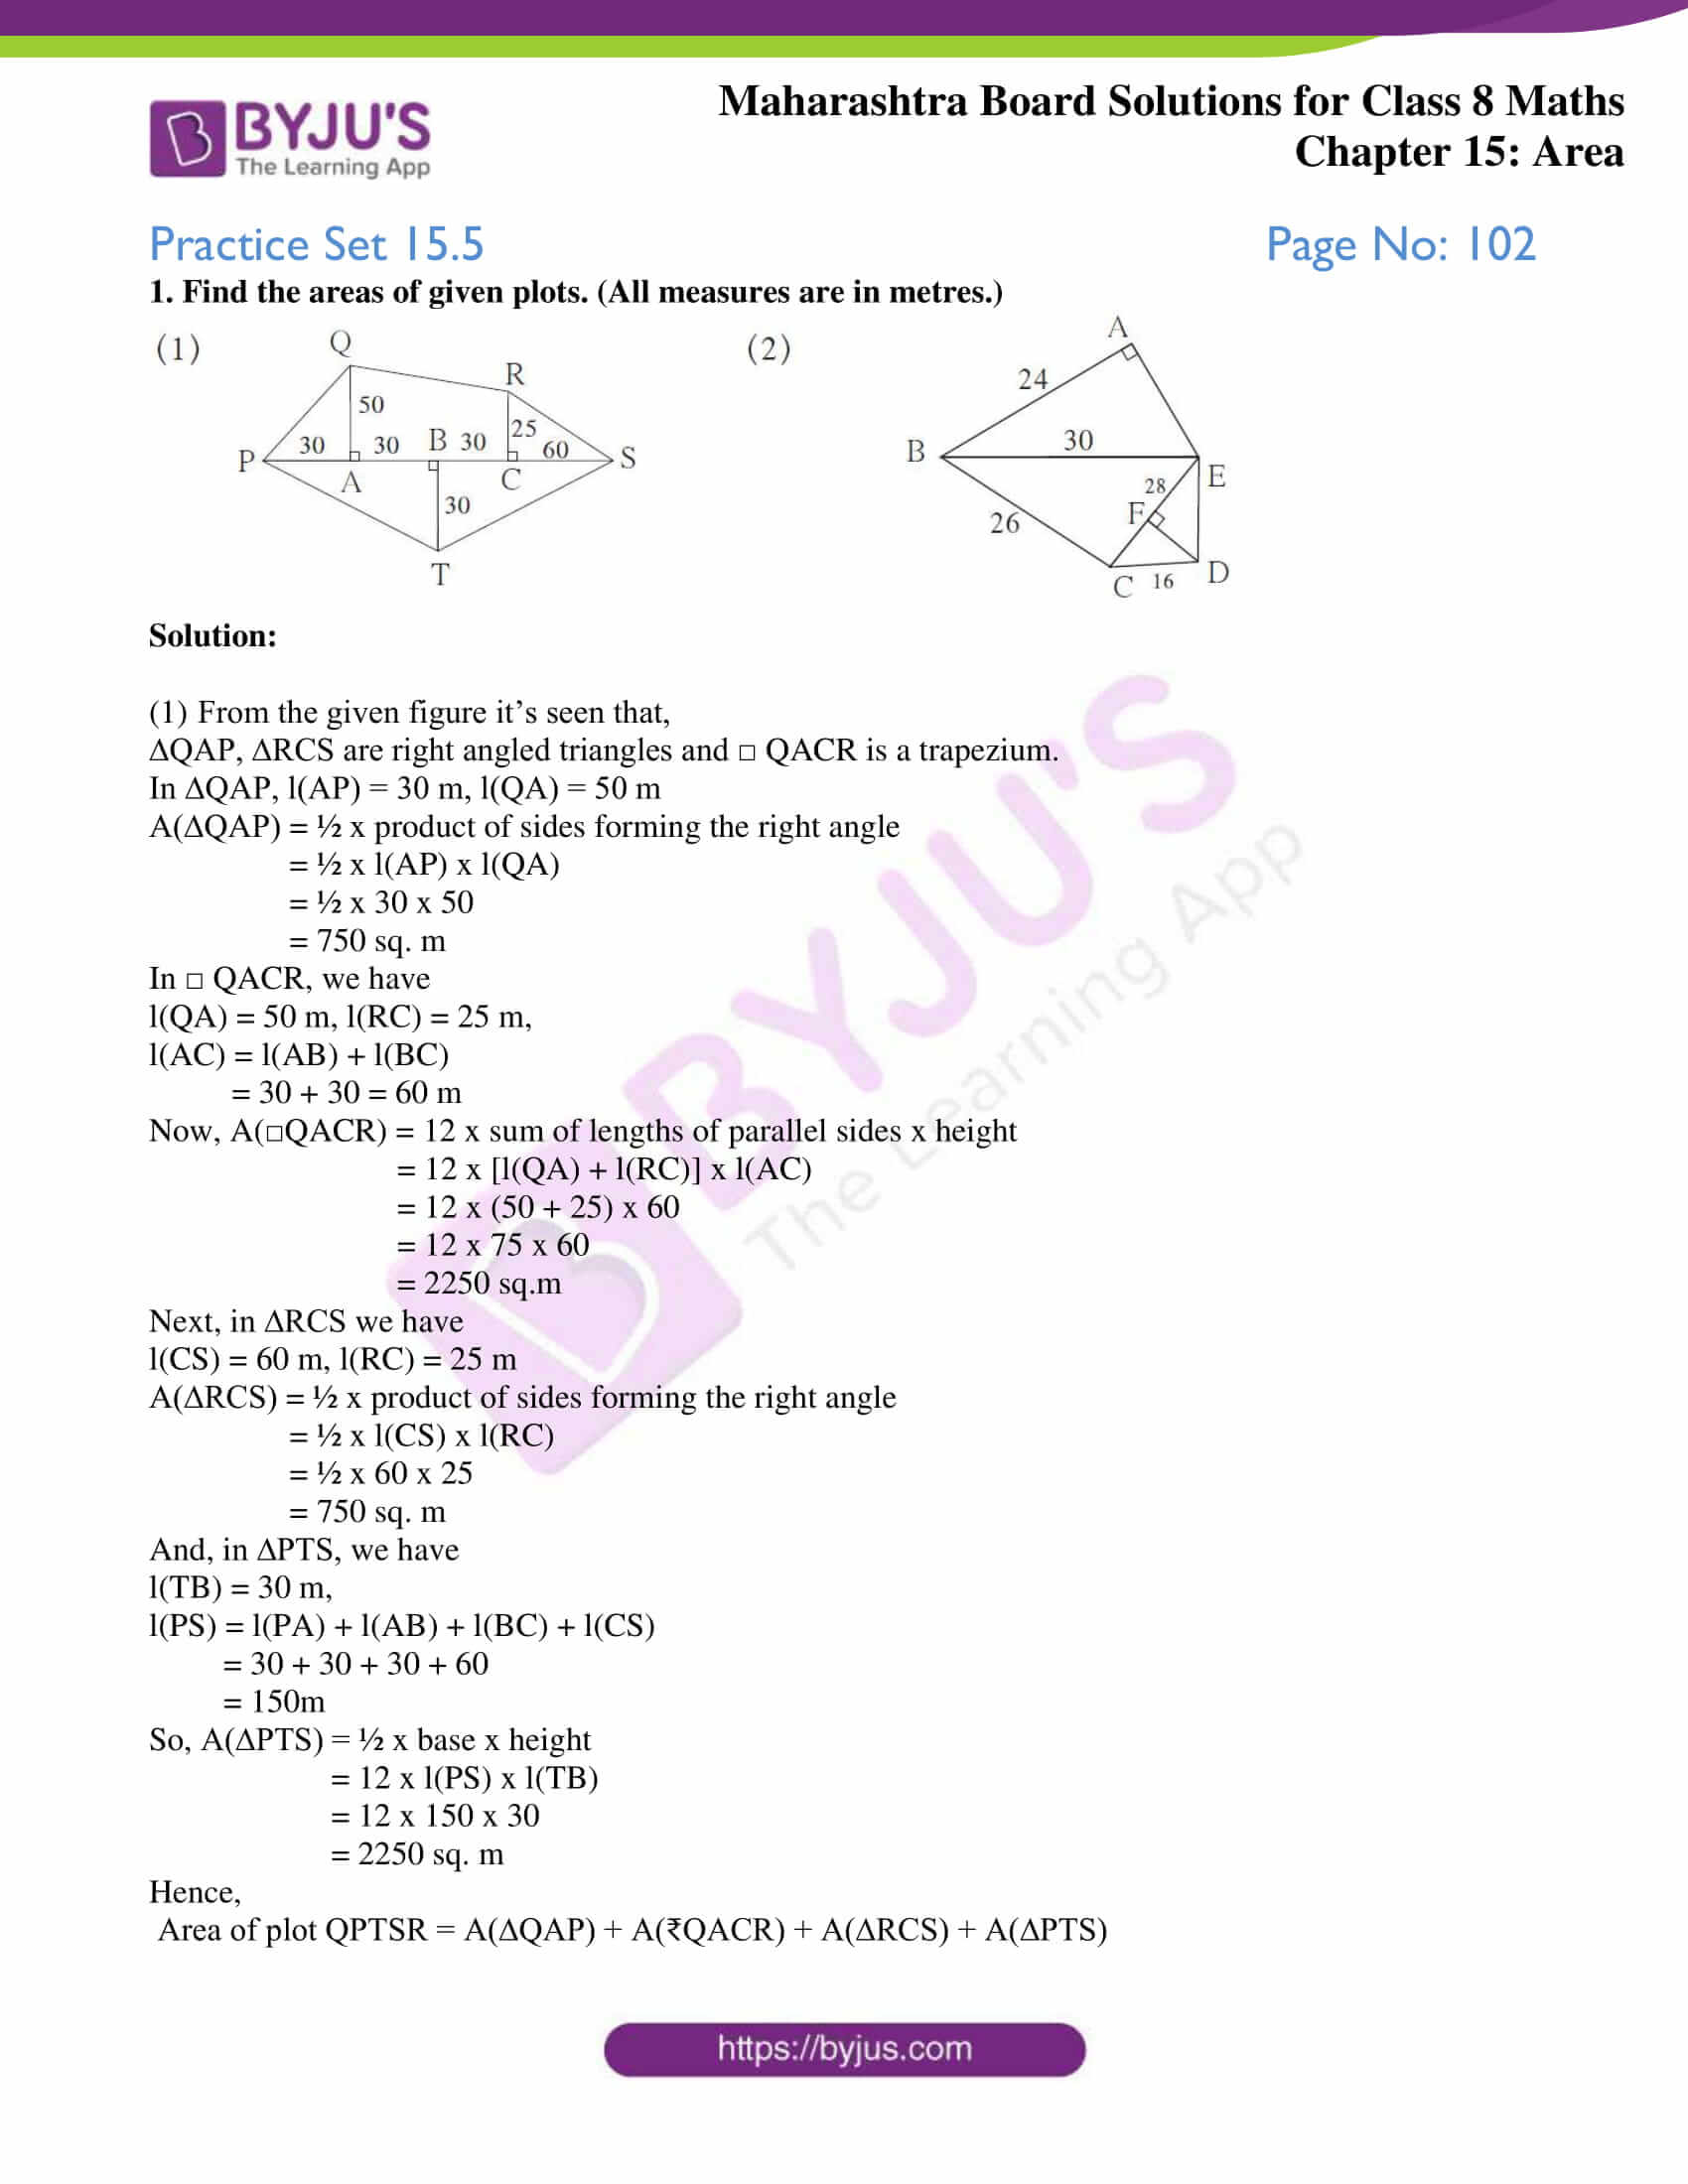 msbshse sol for class 8 maths chapter 15 09